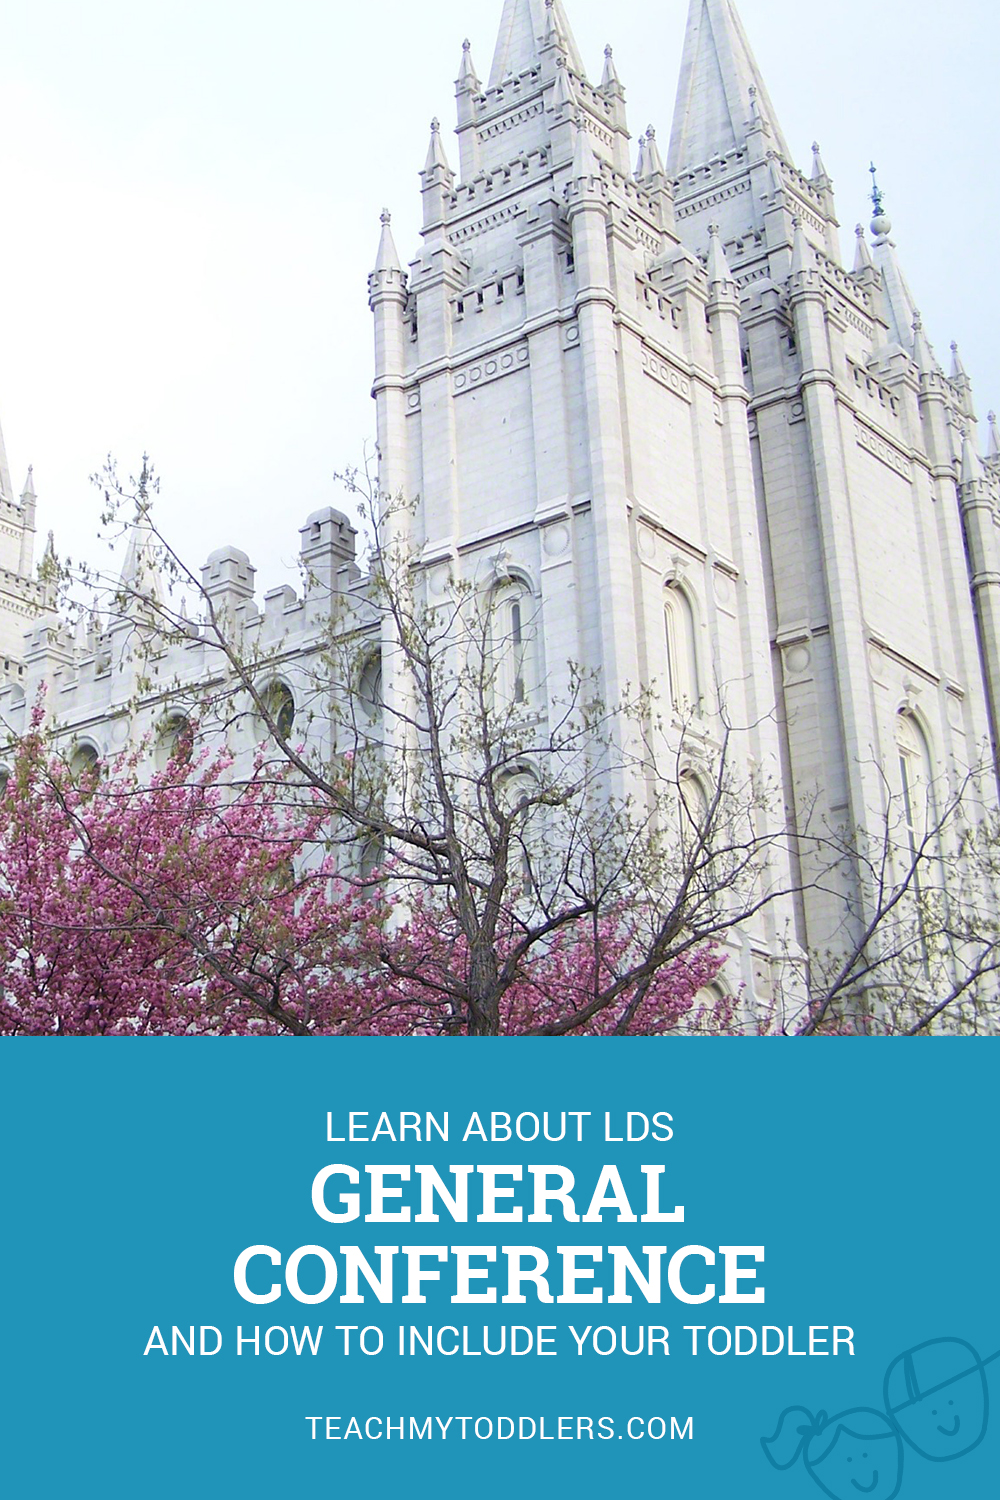 Learn about LDS General Conference and how to include your toddlers